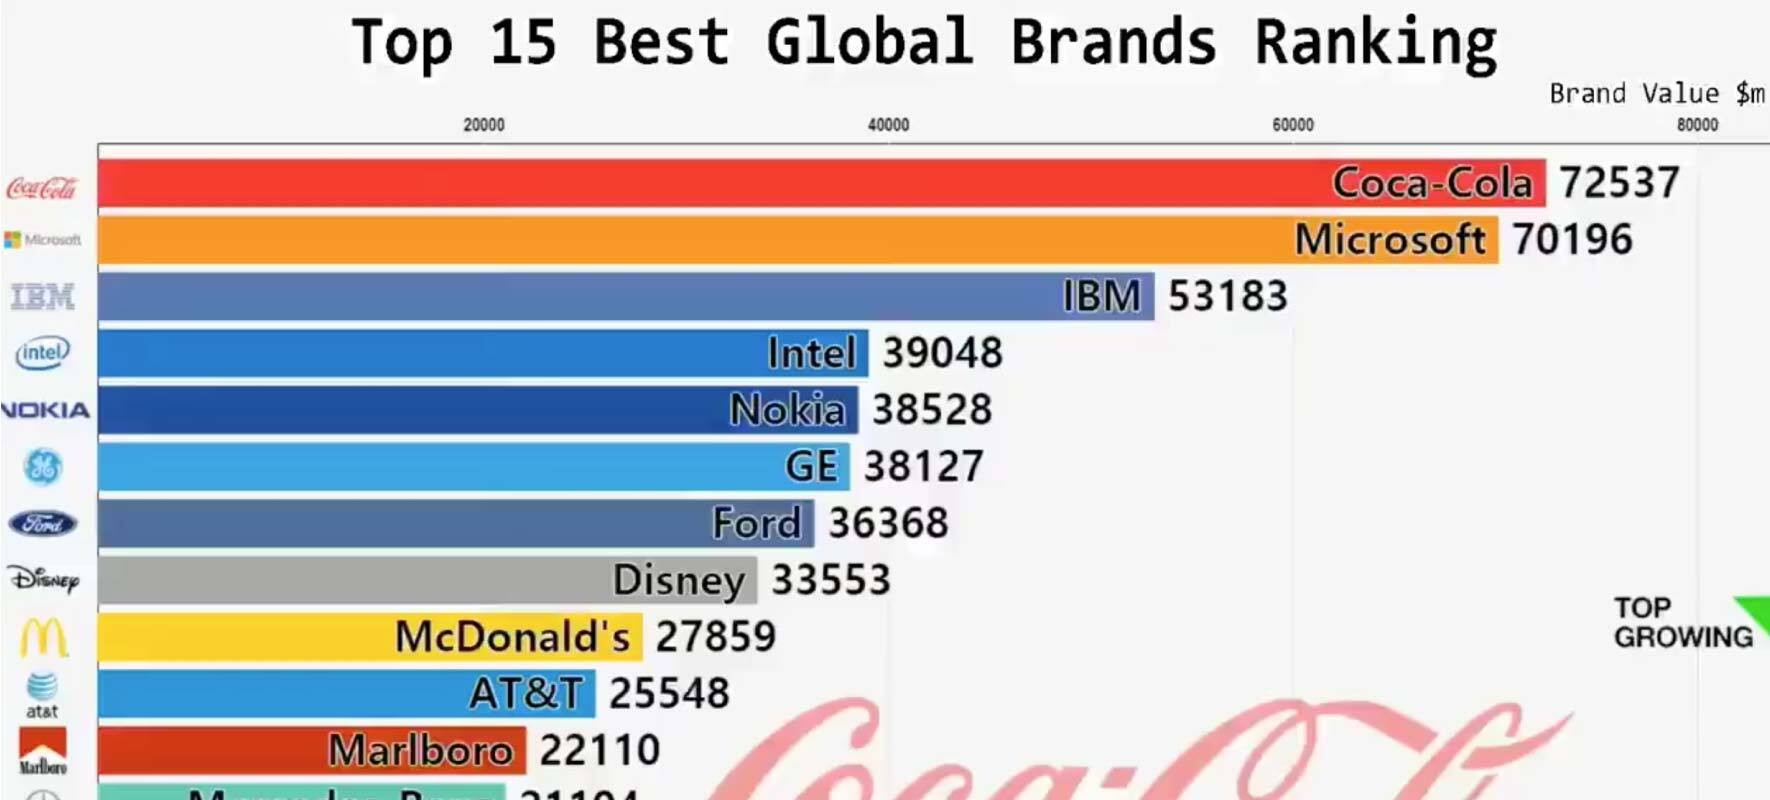 Infographic Examples Top 15 Best Global Brands Ranking